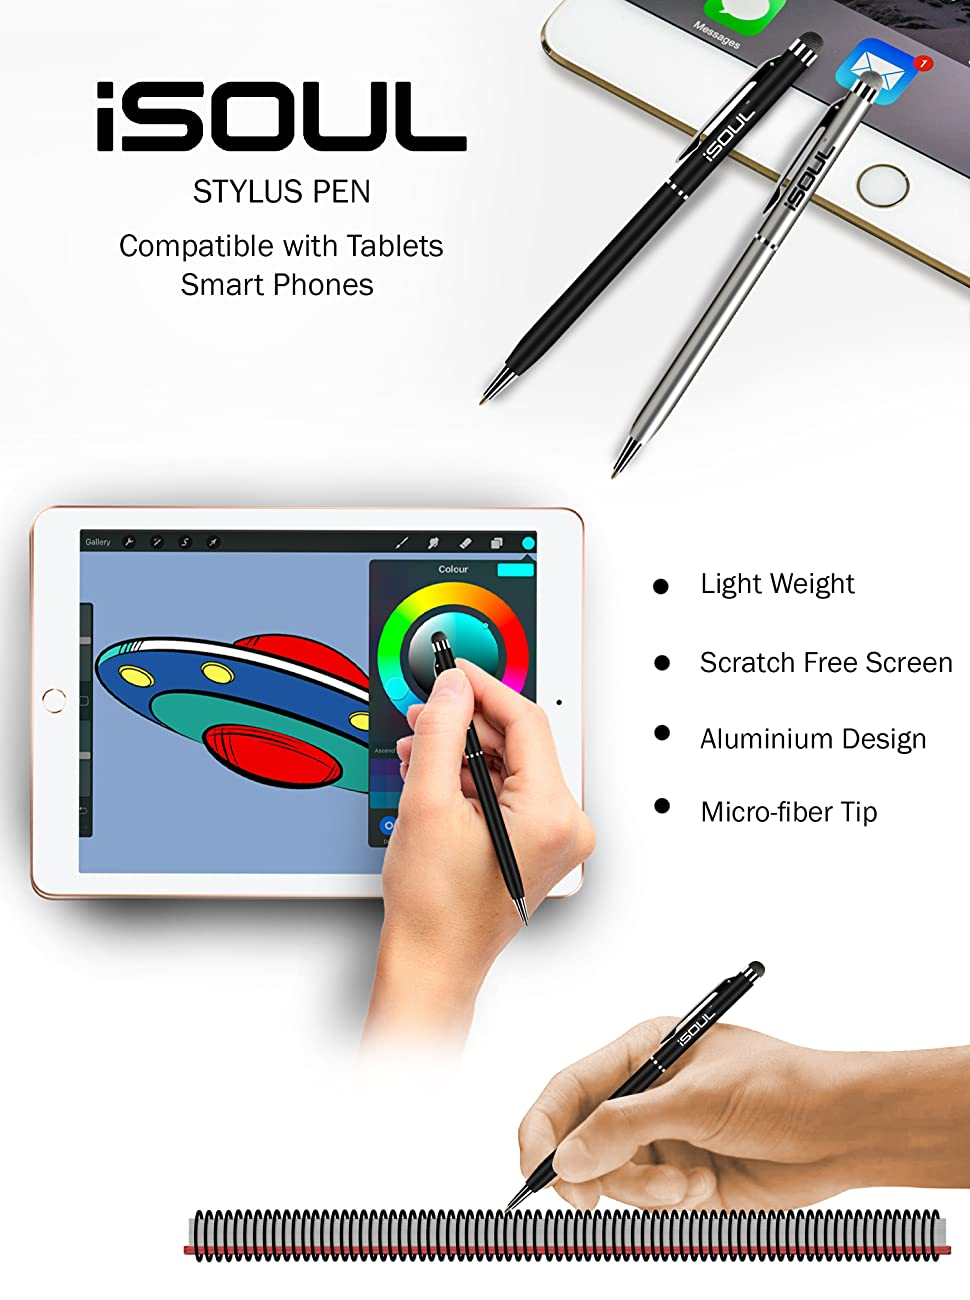 Styli Capacitive Touchscreen Pens For Smartphones 2-in-1 Hybrid Ballpoint Touch Pen for iPhone, iPad